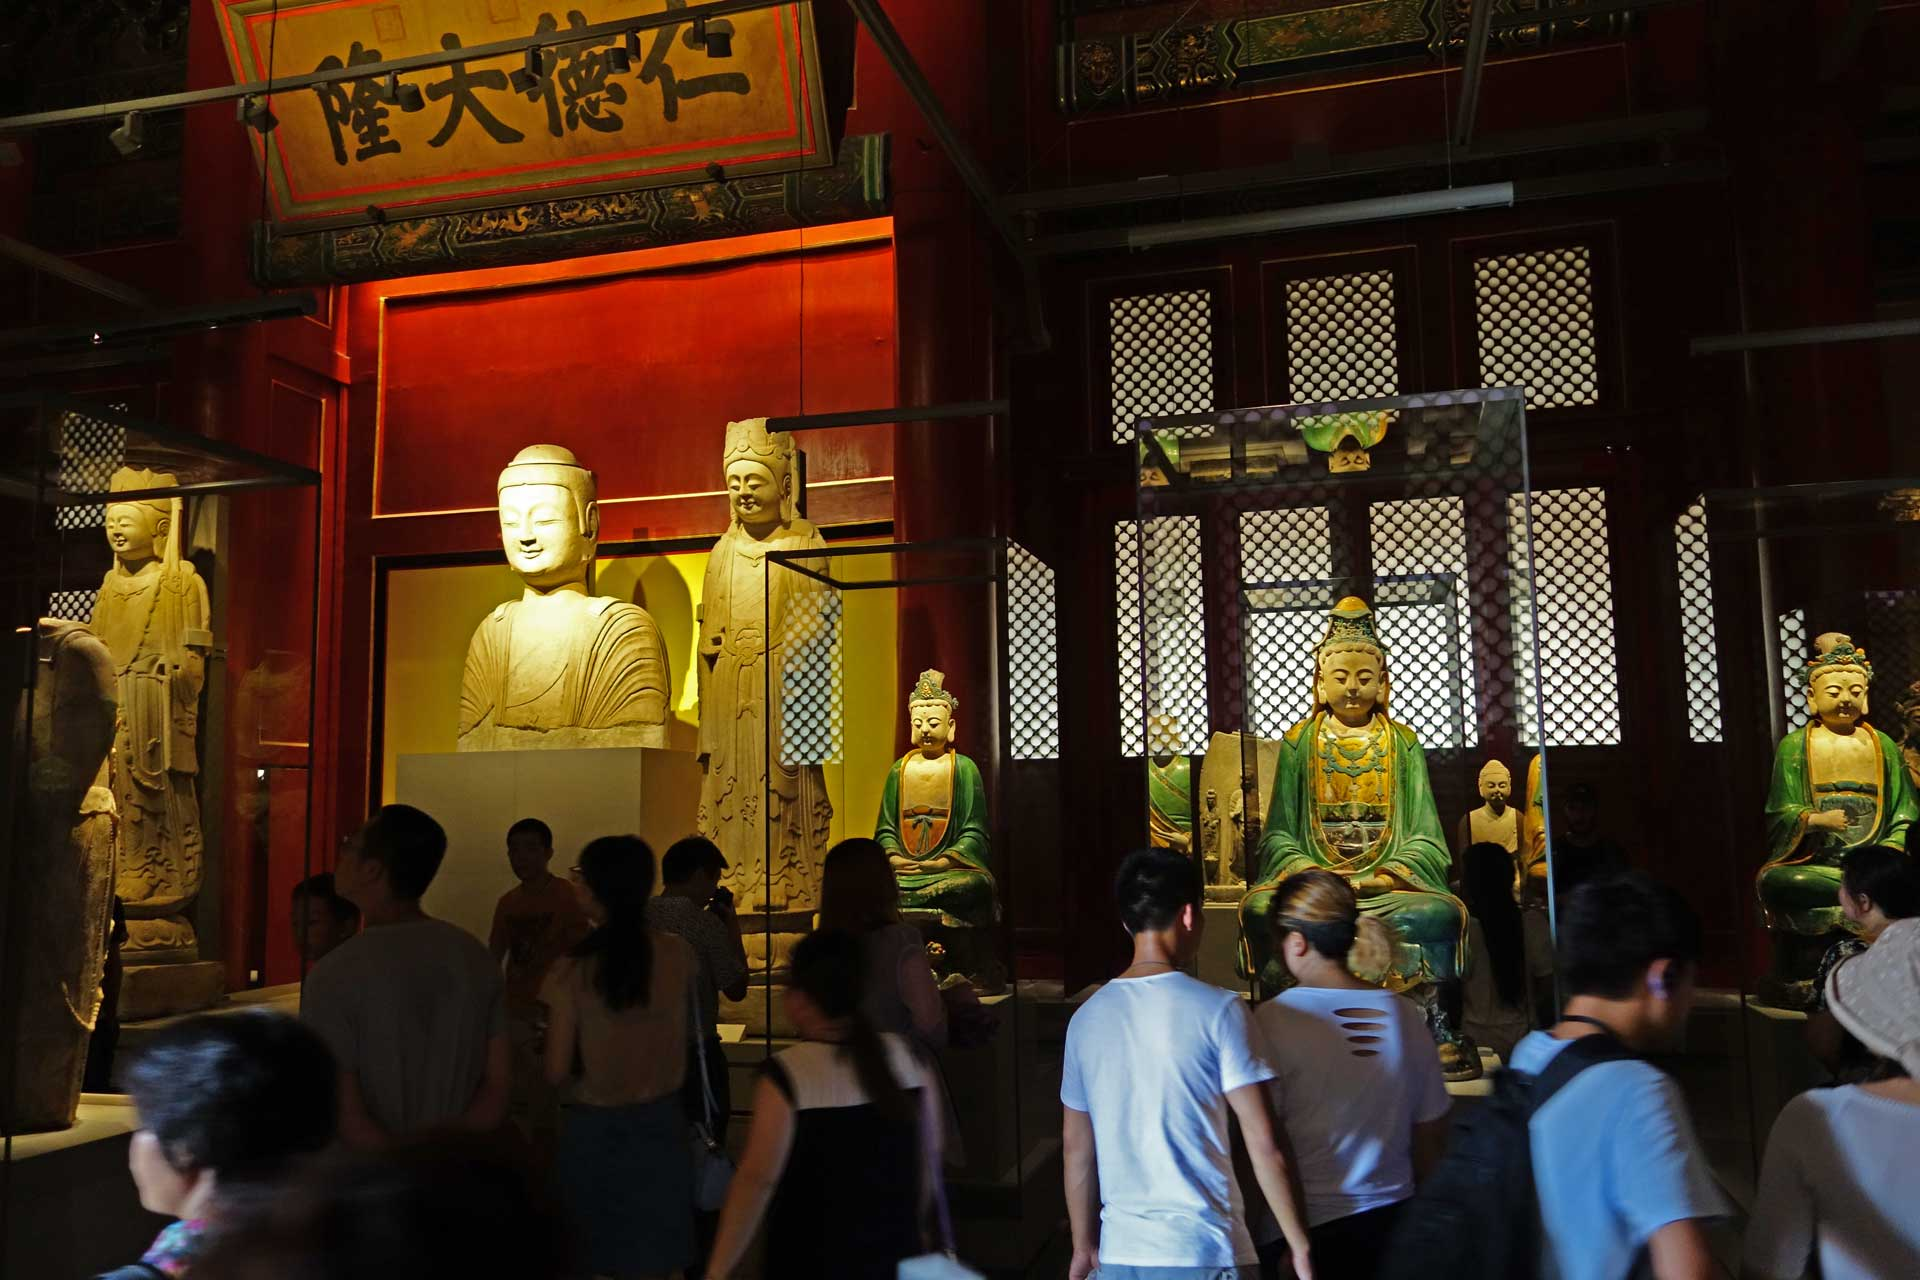 Buddhist Statues in the Forbidden City